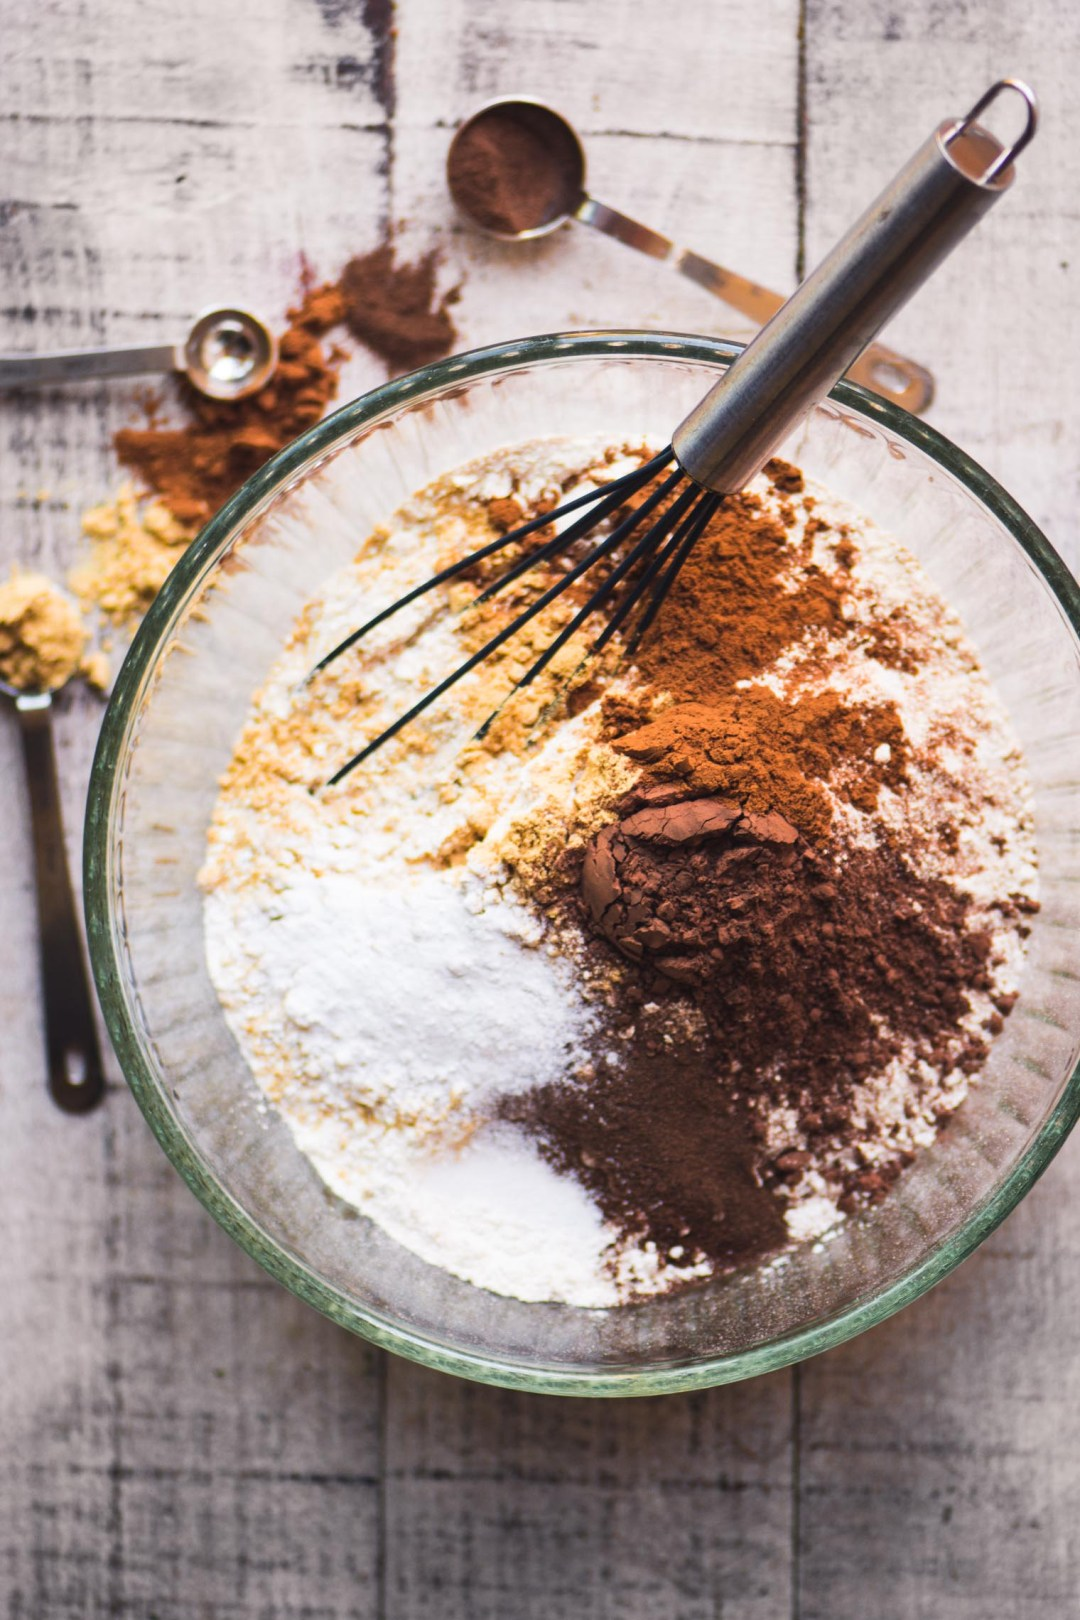 Whisking dry ingredients for easy gingerbread cookies with royal icing